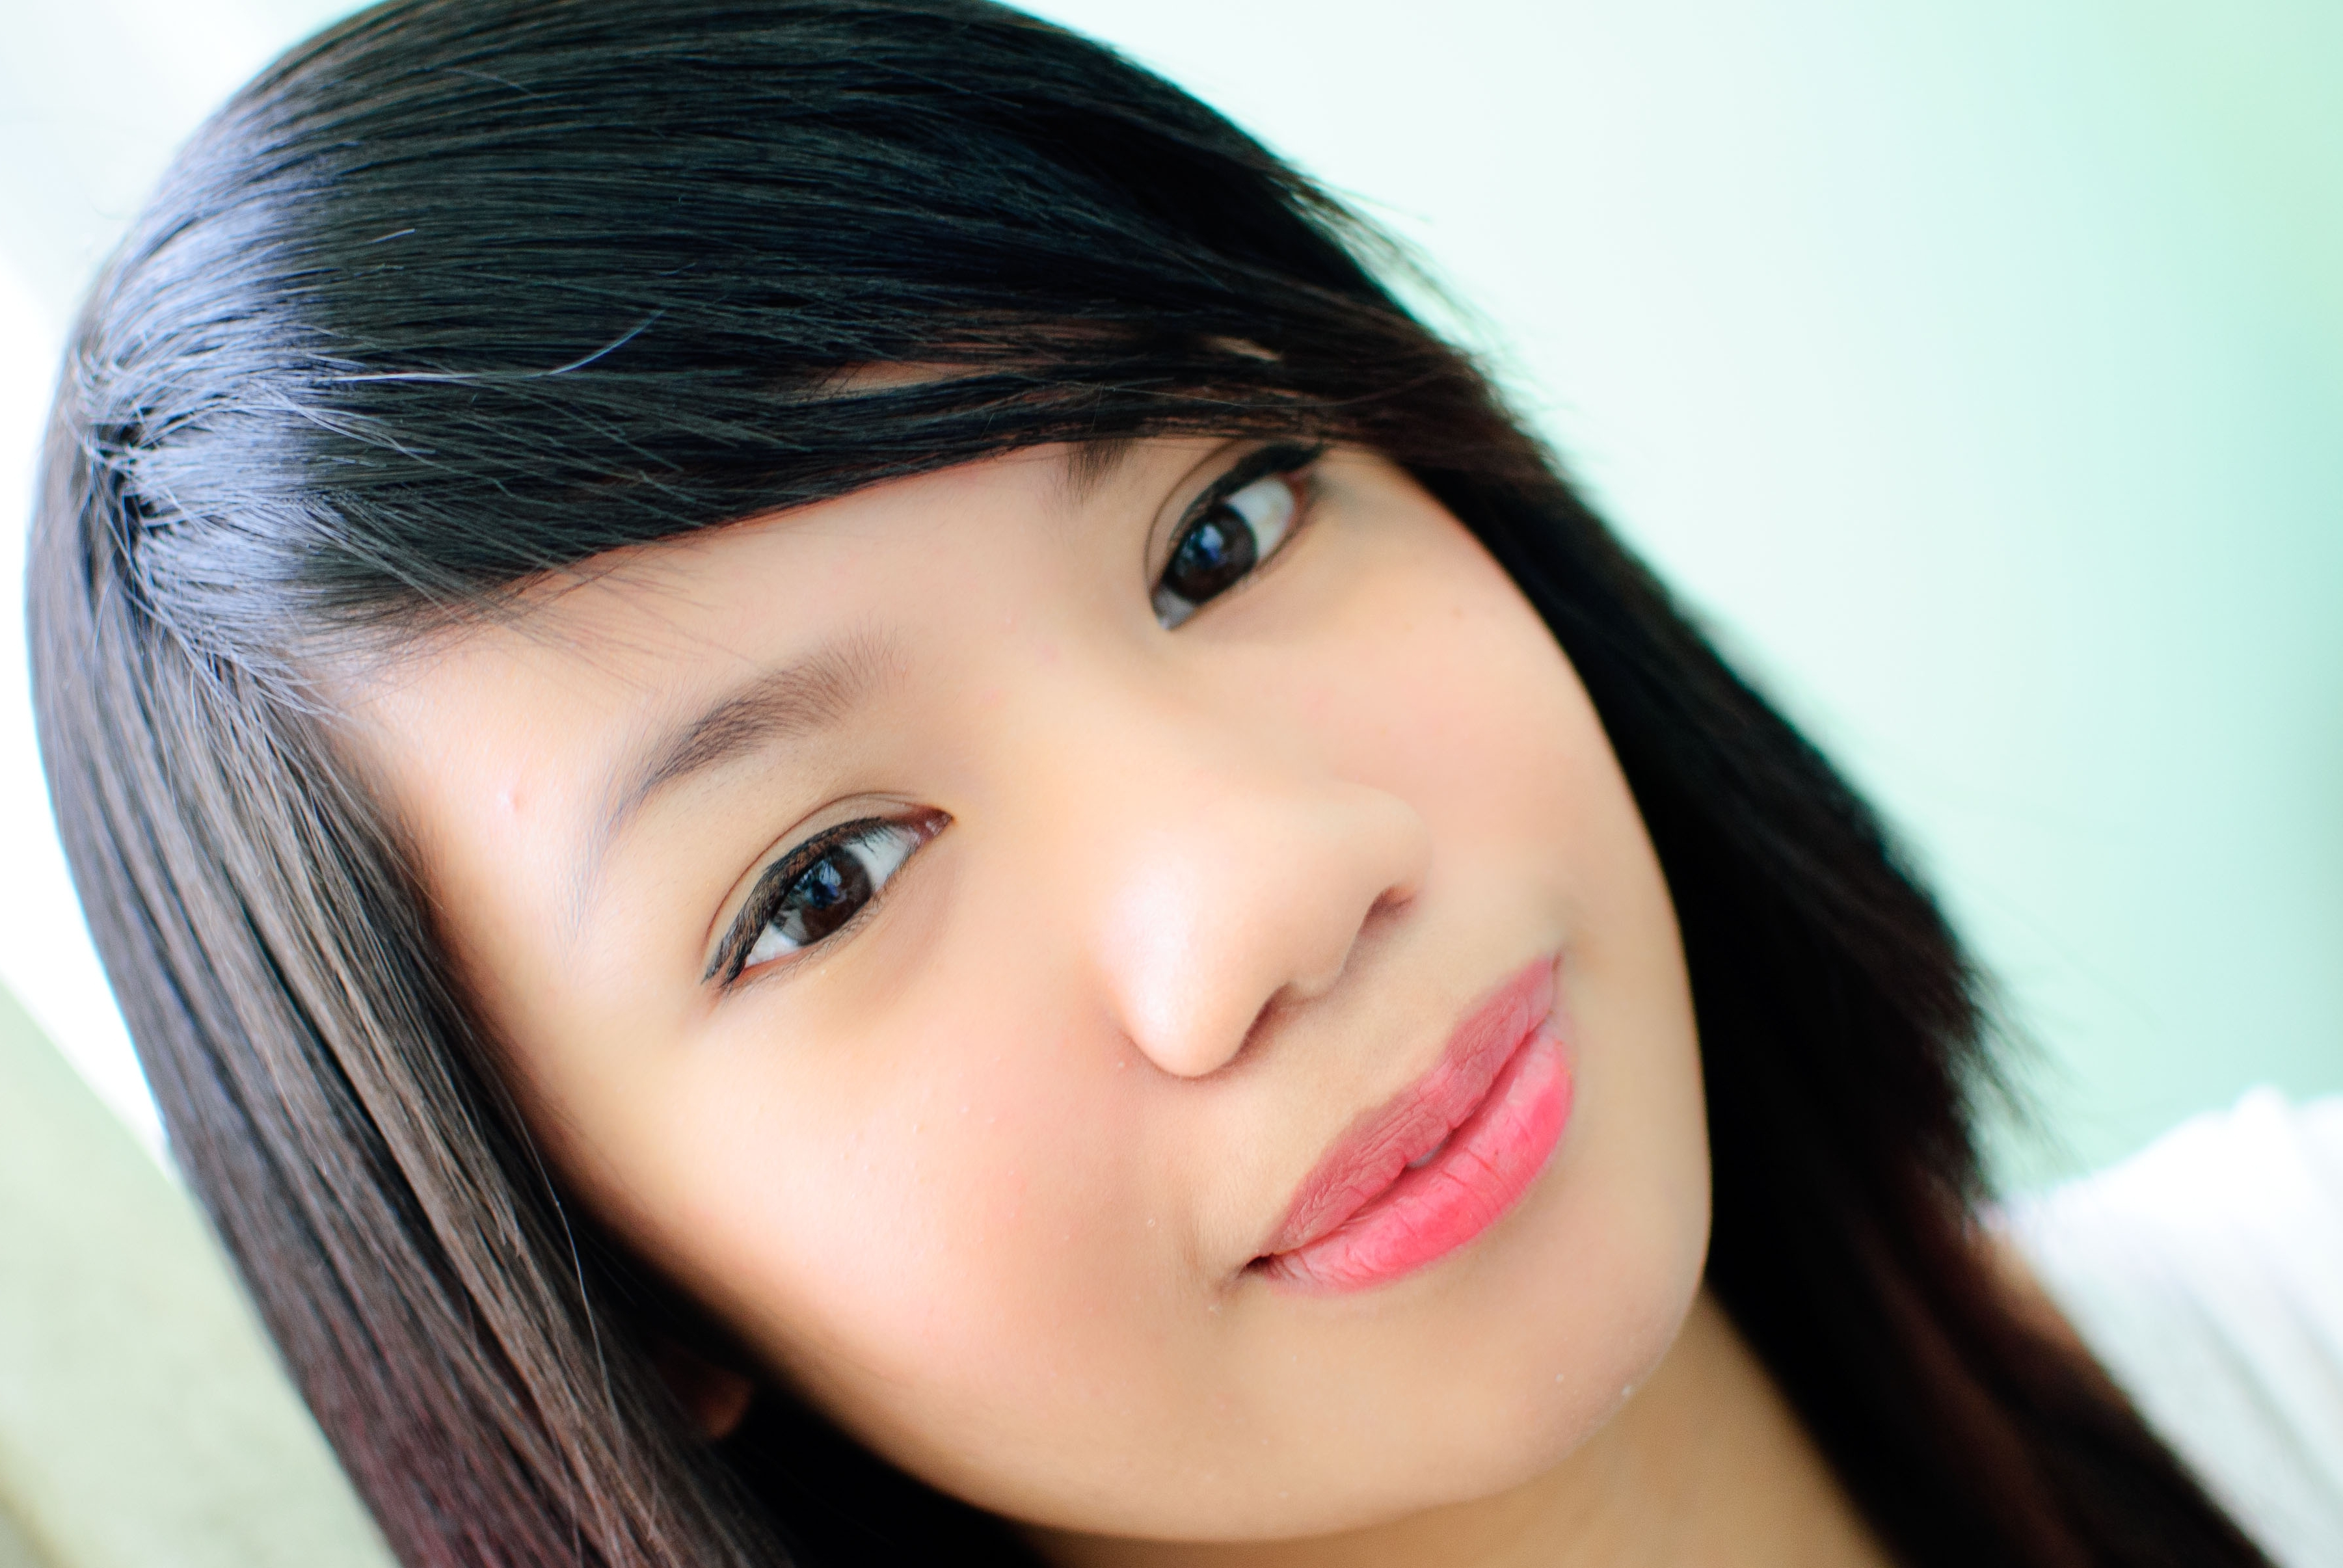 Long Hairstyles With Swoop Bangs How To Get Sideswept Bangs With Regarding Fashionable Side Pony Hairstyles With Swooping Bangs (Gallery 19 of 20)